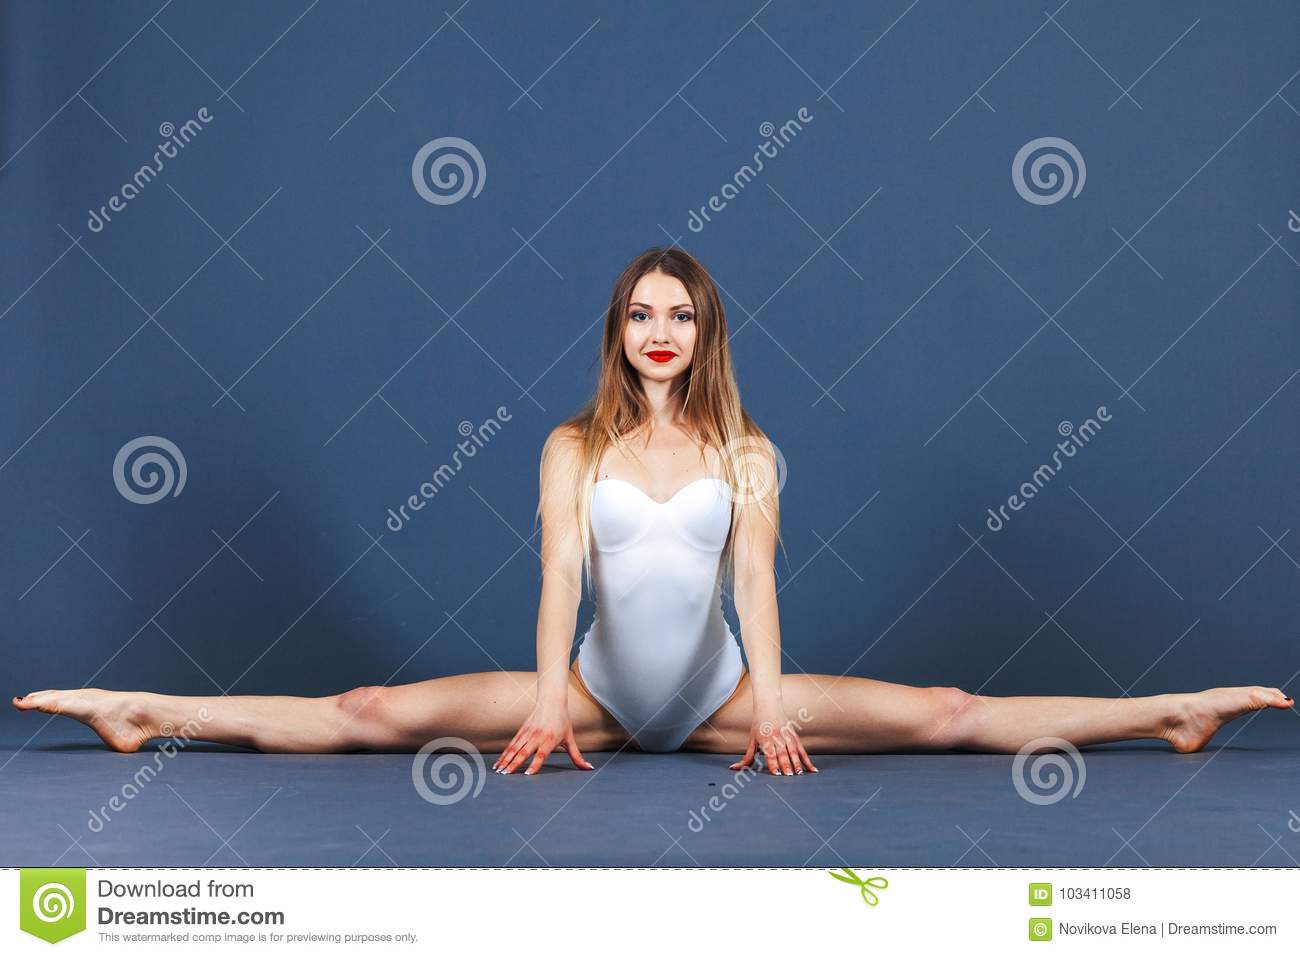 Sport young woman in sportwear bodysuit sits on a twine on a blue background. Studio shot